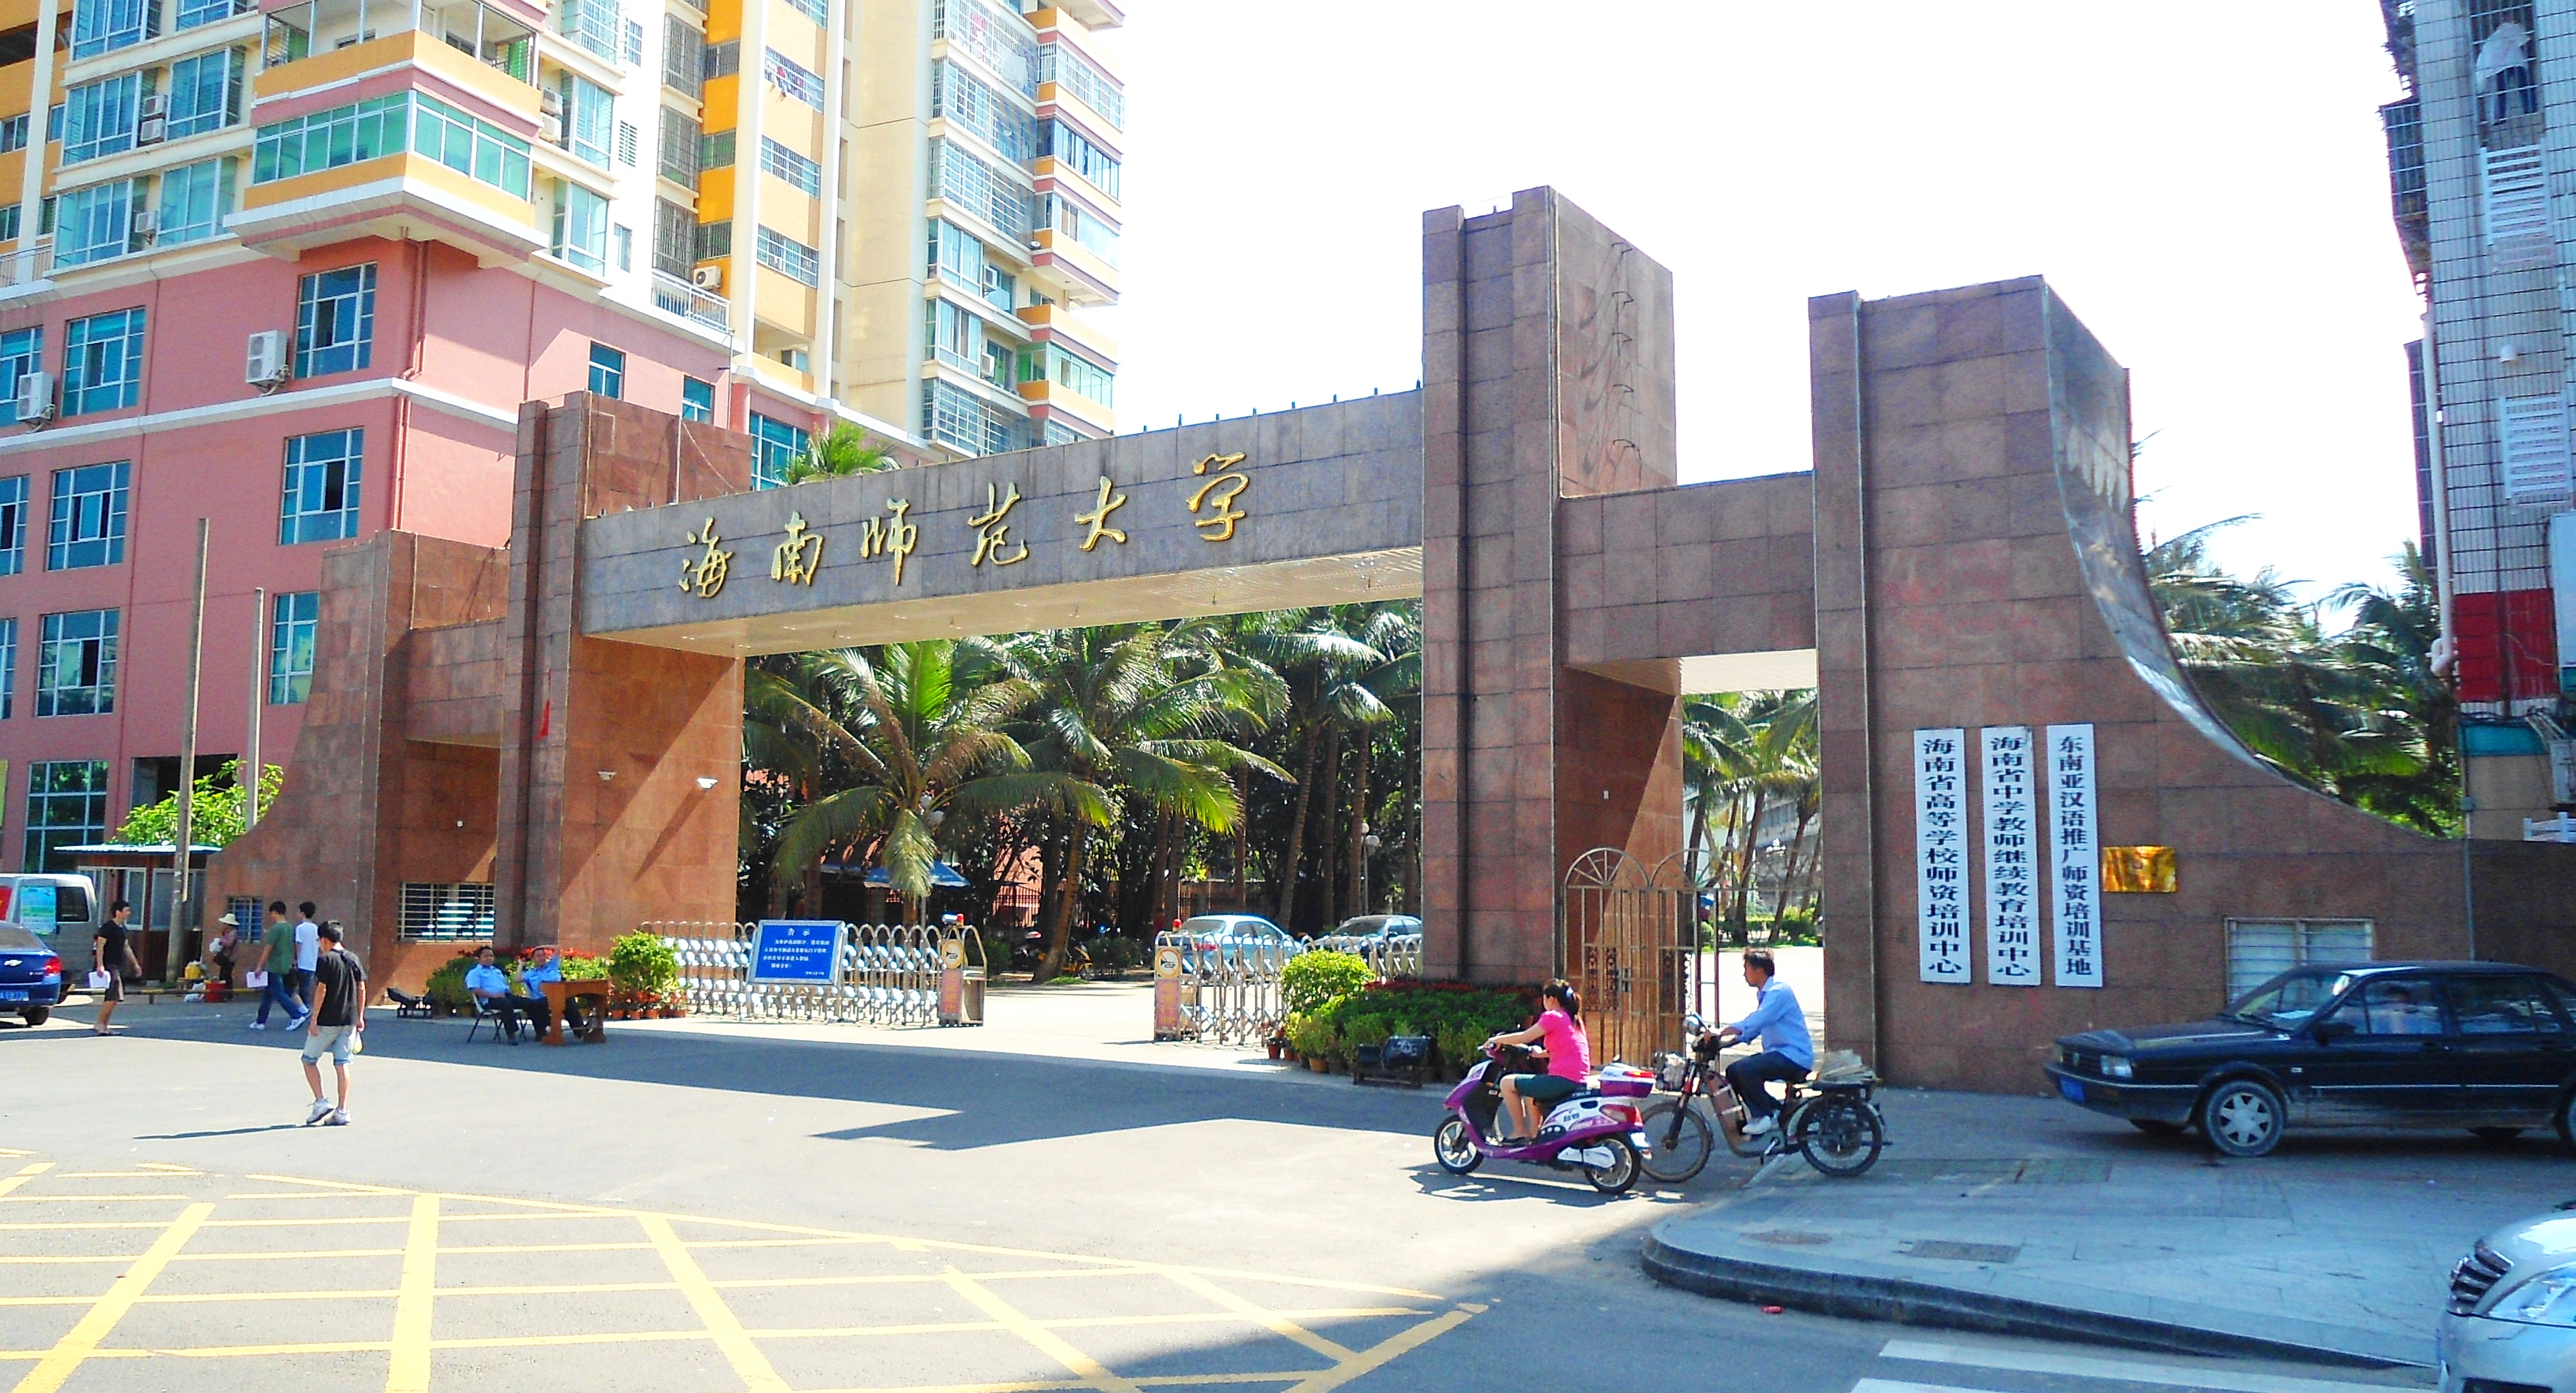 3%2f3f%2fhainan normal university%2c haikou campus   01